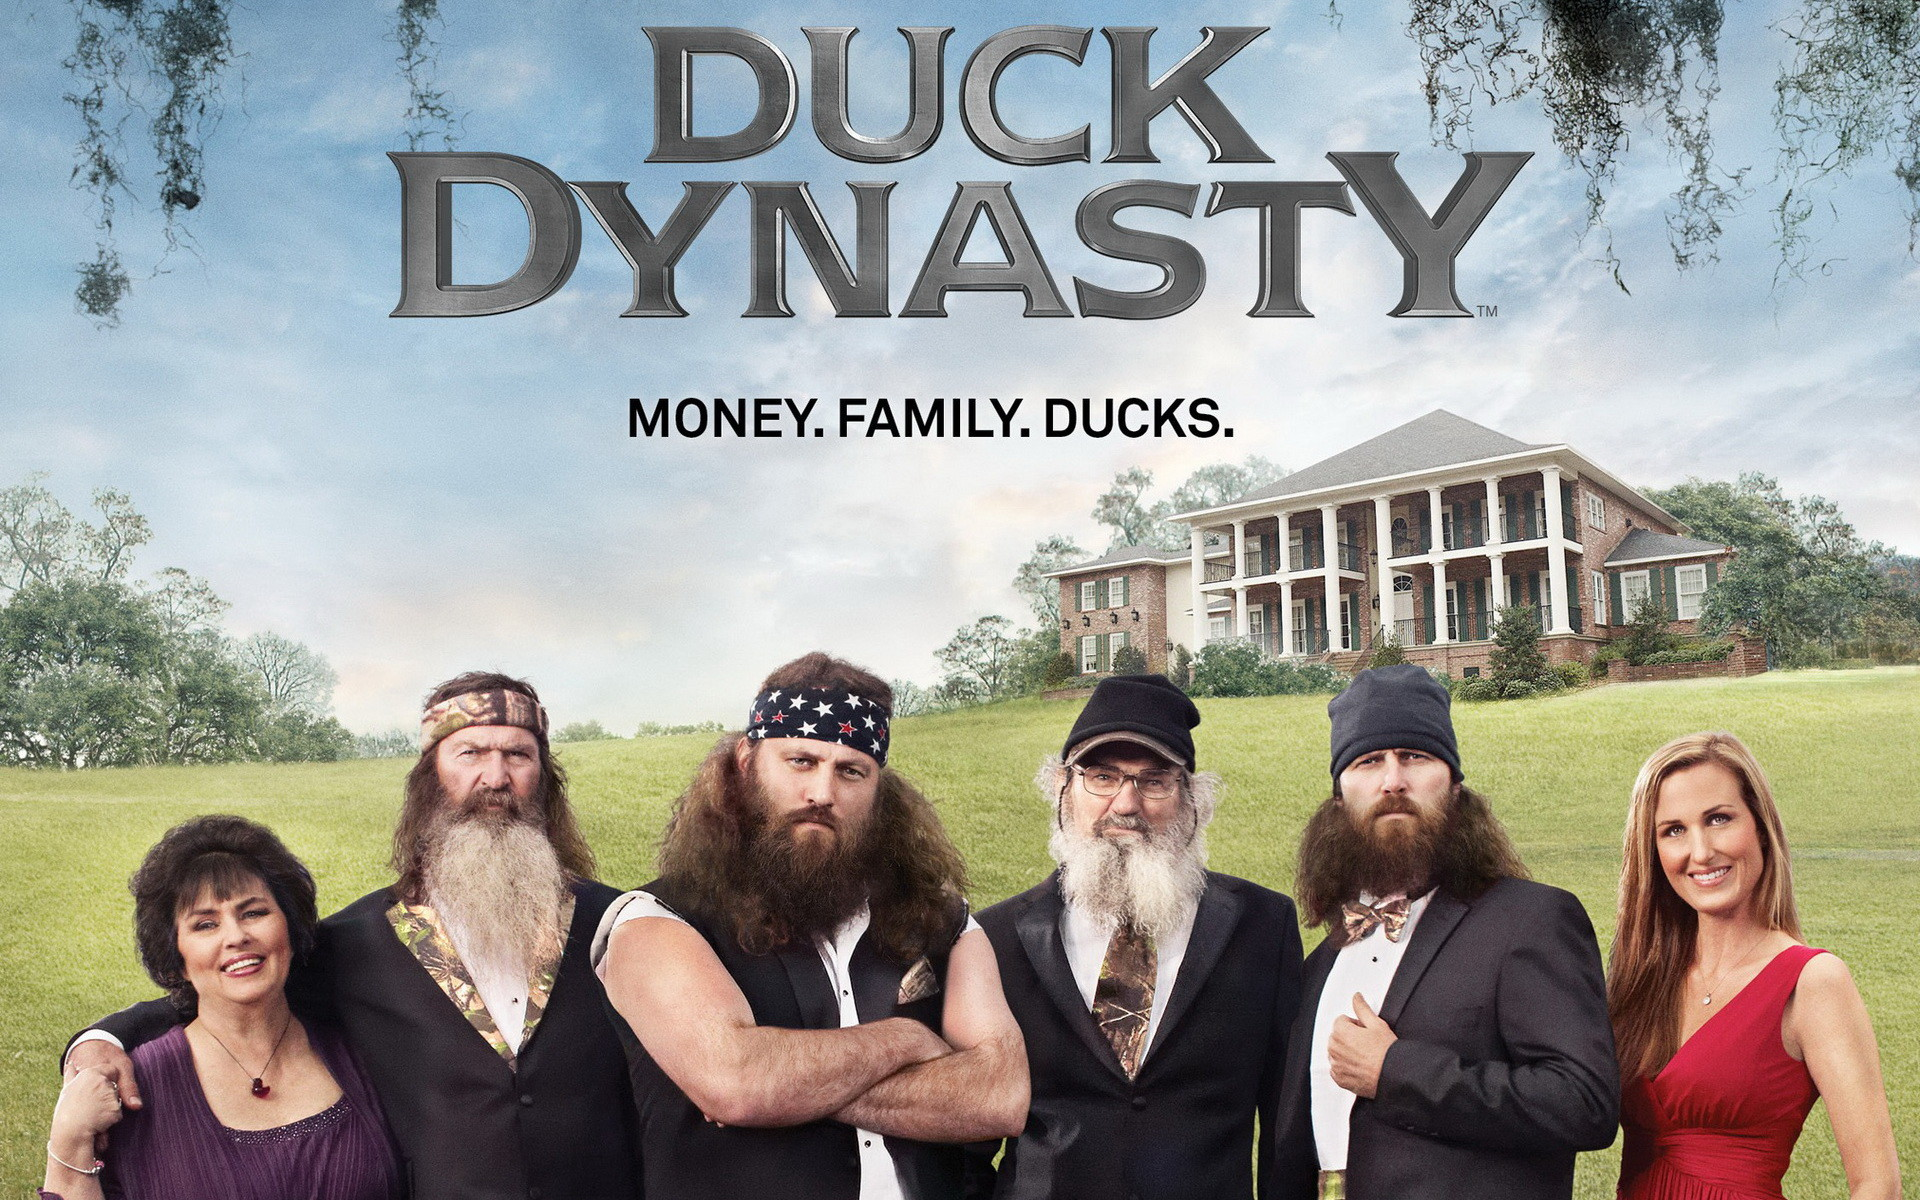 Duck Dynasty Musical to Show in Las Vegas